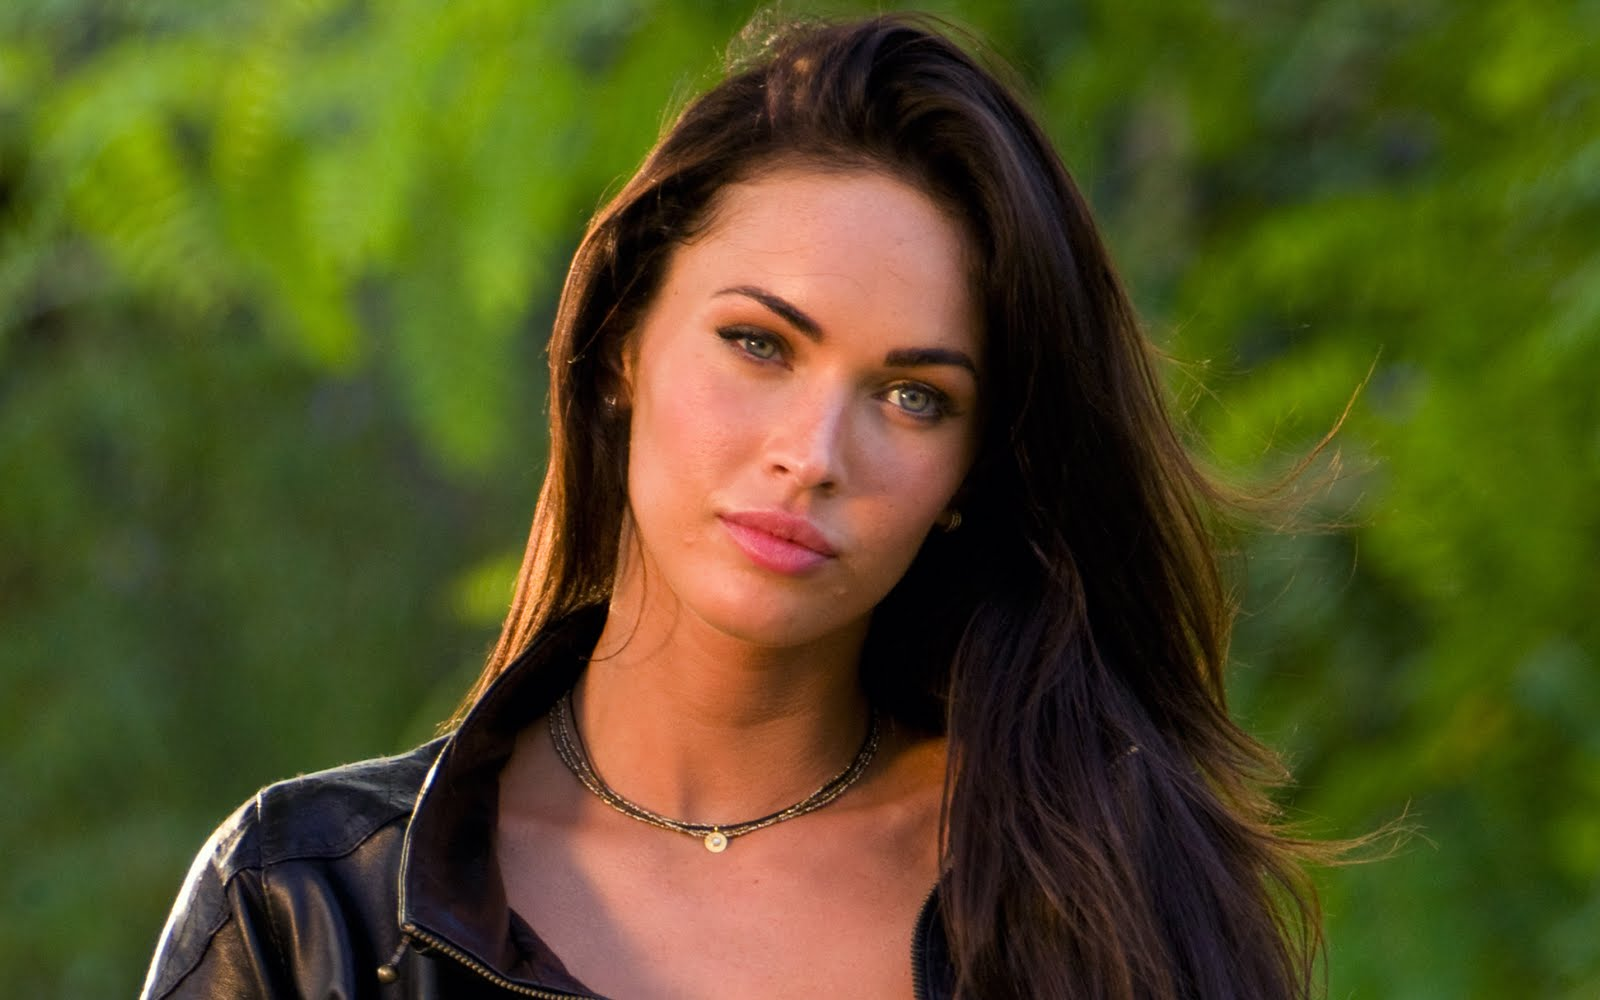 megan fox hot high resolution hd wallpapers free download 2013